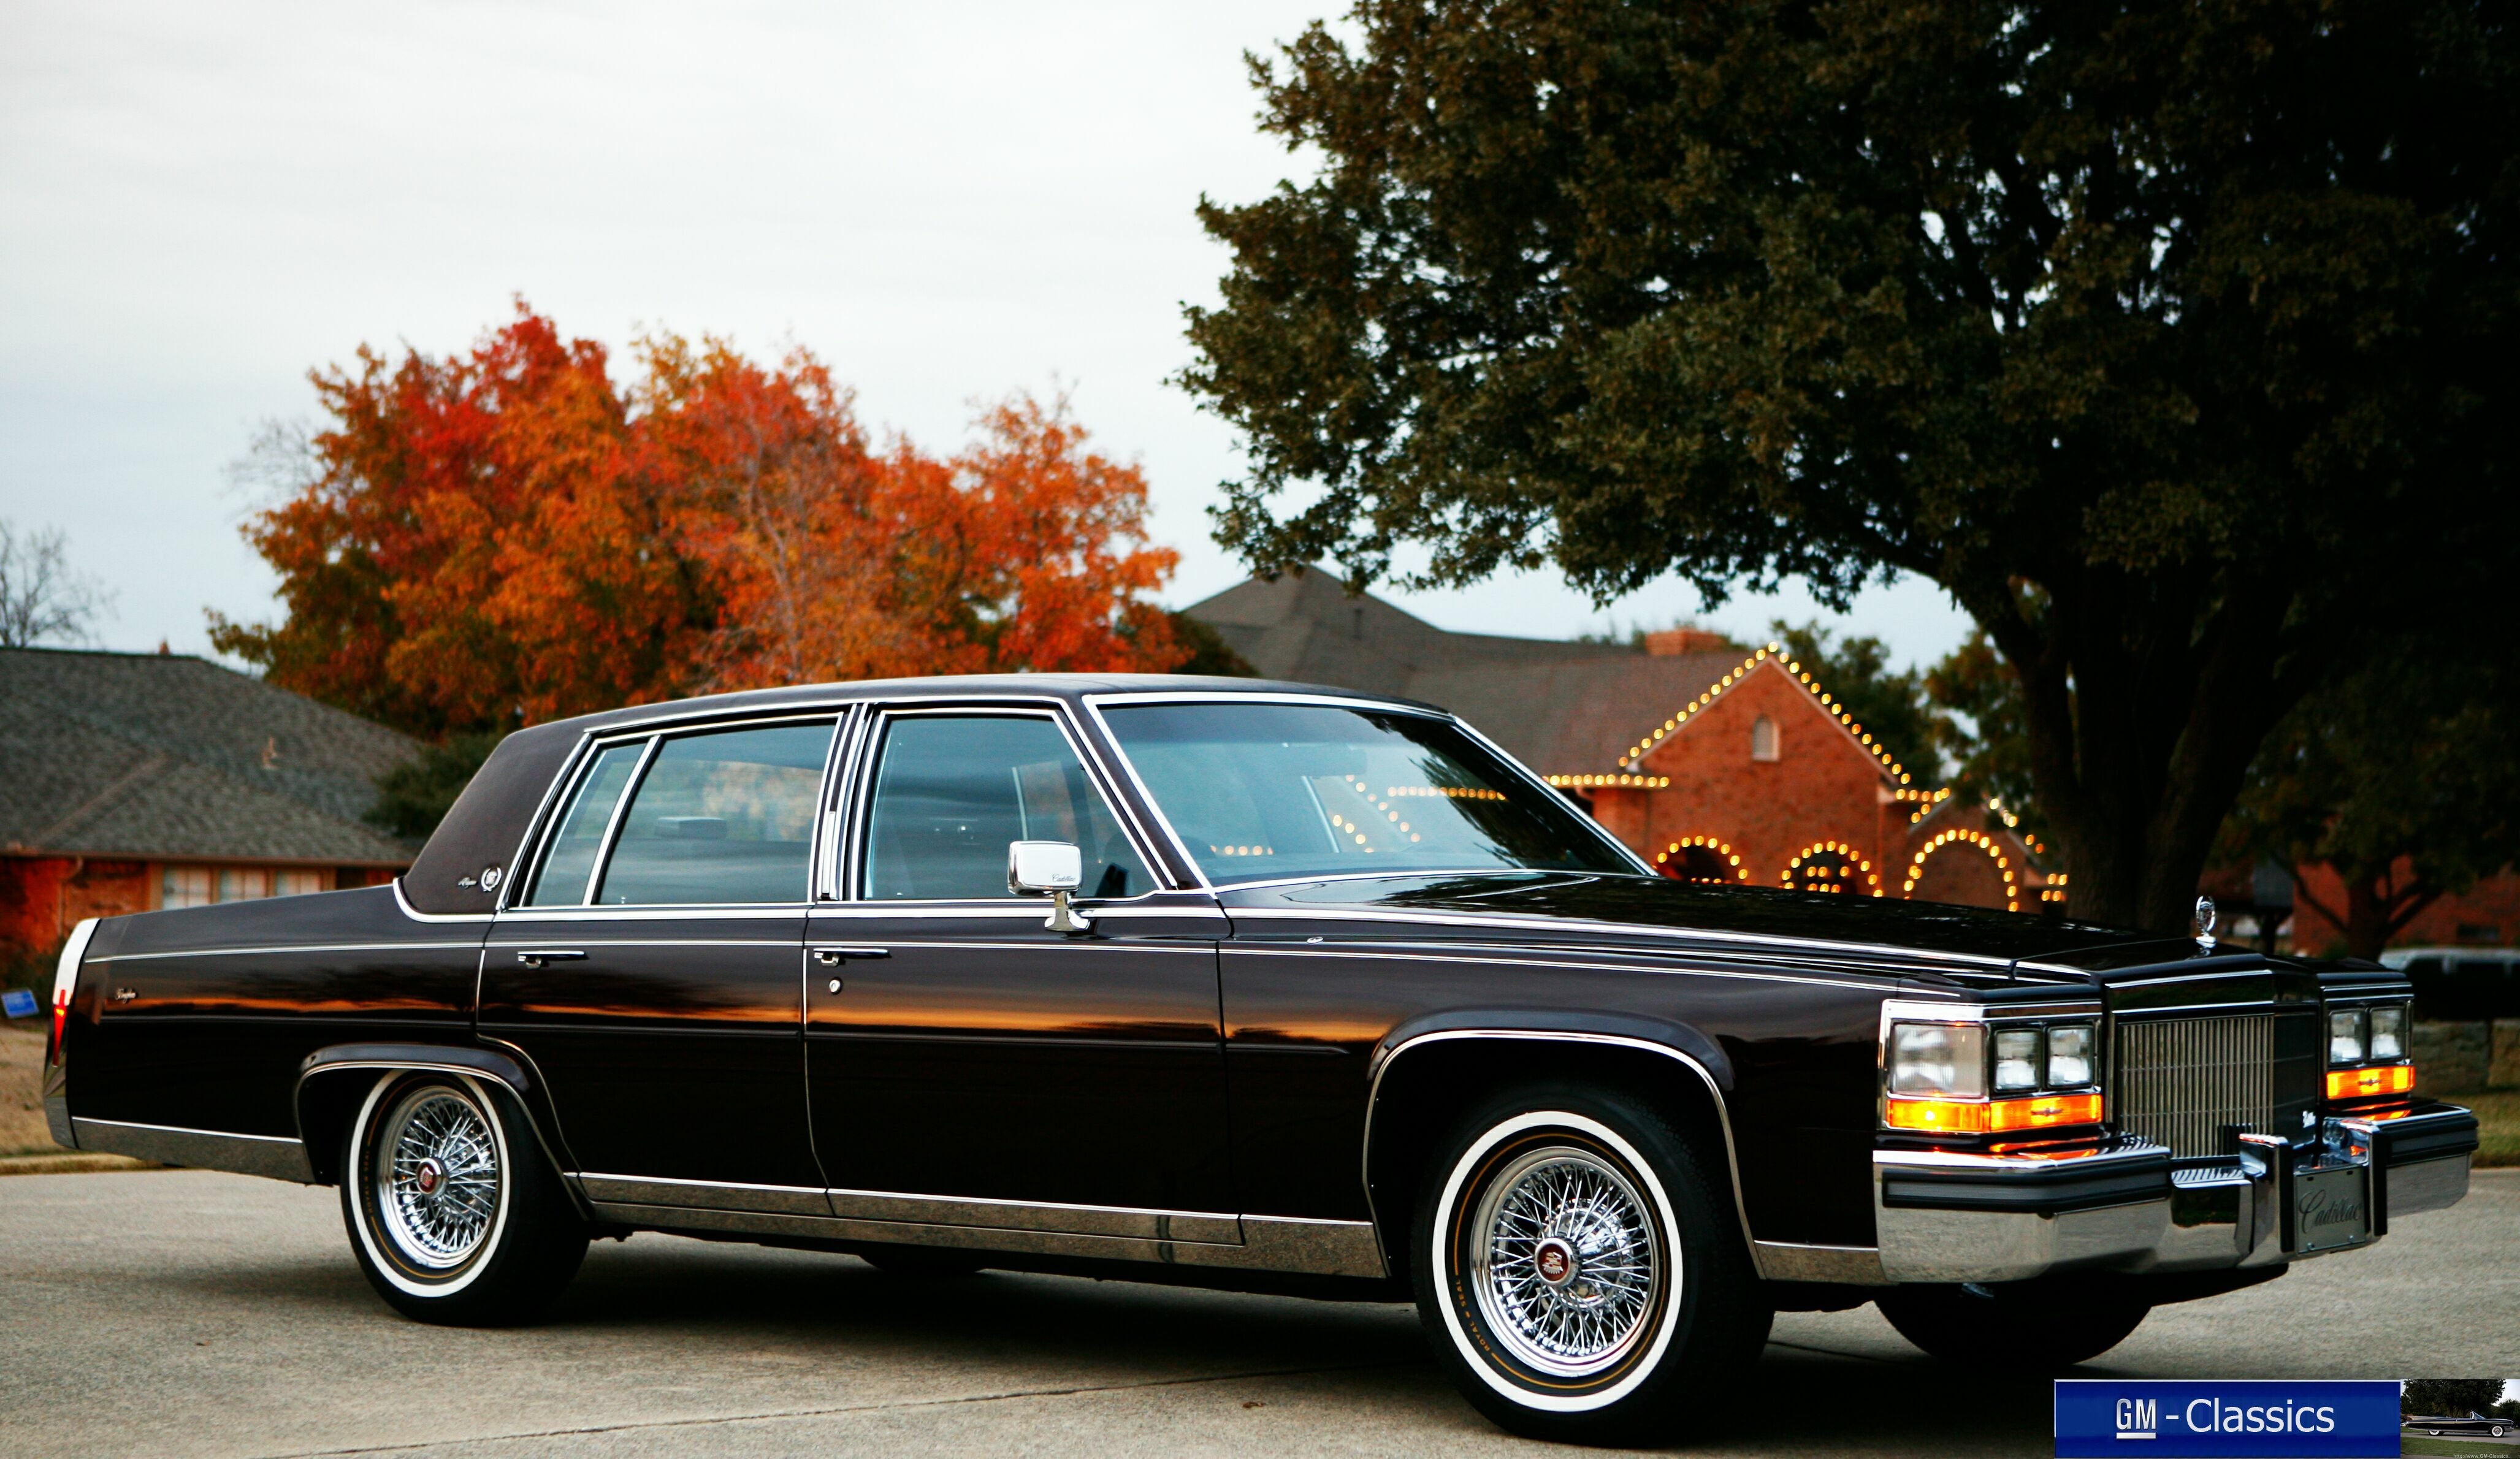 Late 80s Cadillac Fleetwood Brougham 4dr Resin Kit Available Car Aftermarket Resin Model